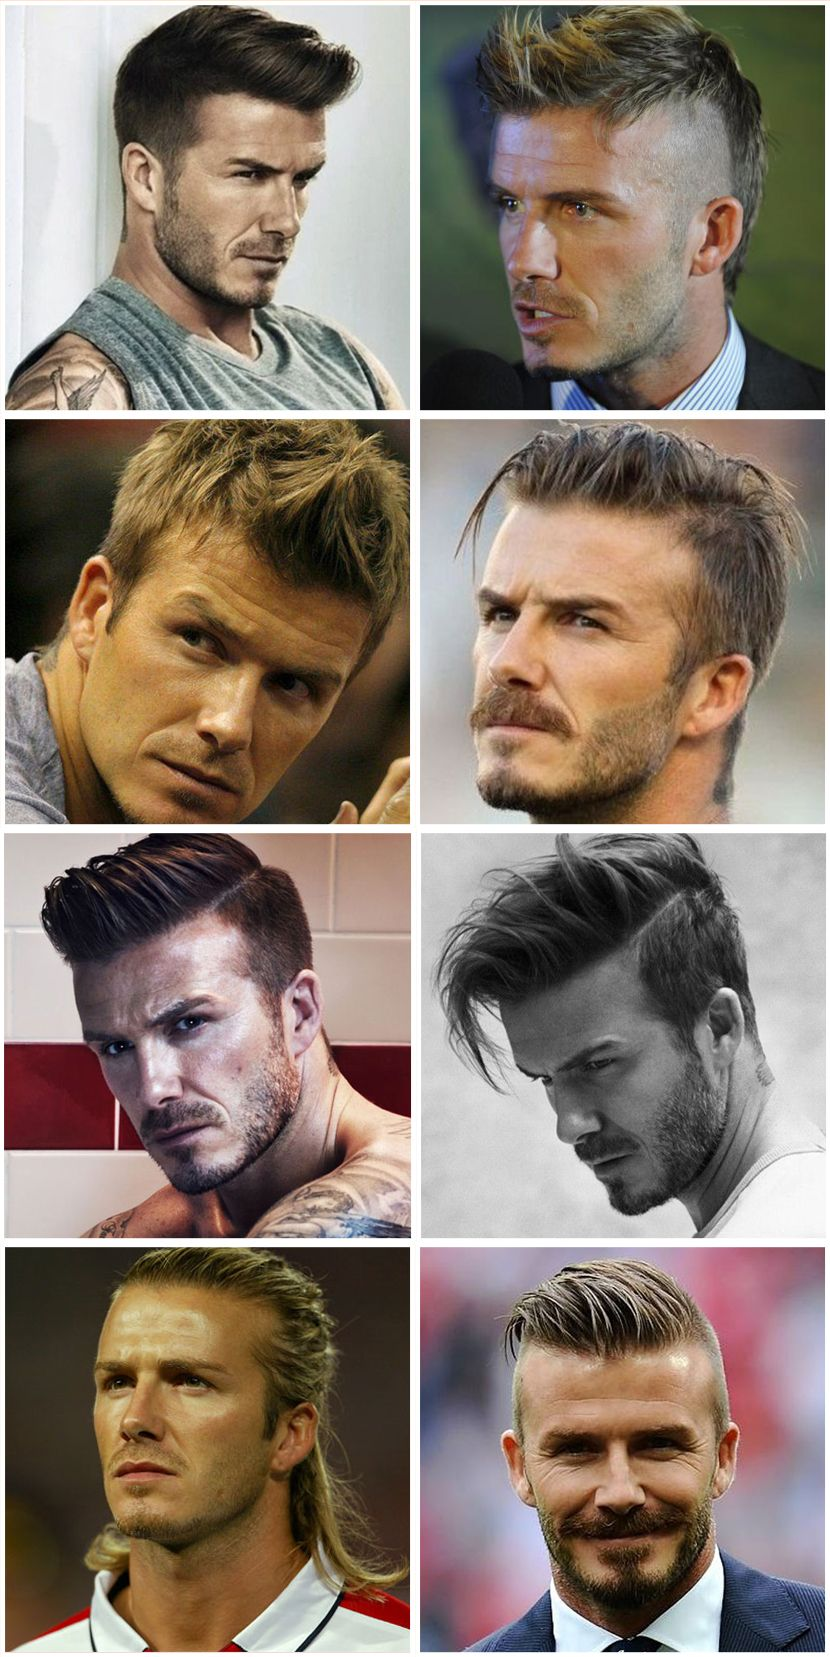 Mens short undercut haircut menus hairstyles david beckham epic haircuts  zfdhjjyasyj